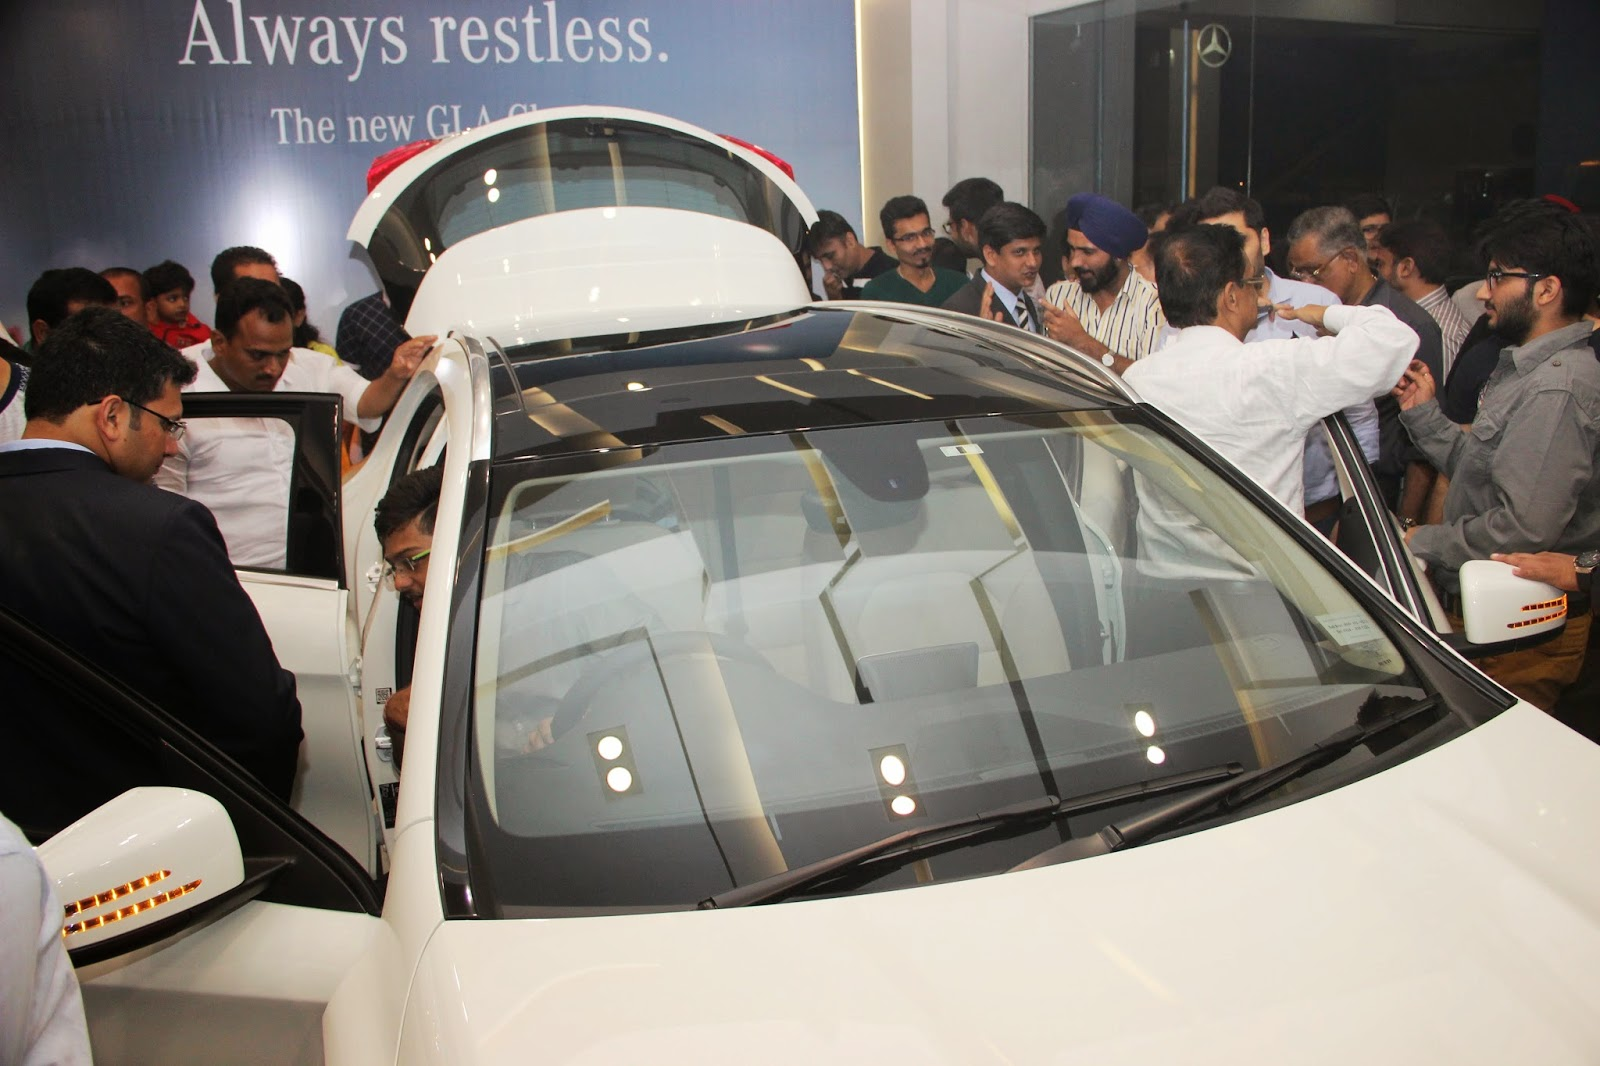 Mercedes Benz GLA-Class Preview Launch at Shaman Wheels,Kalina